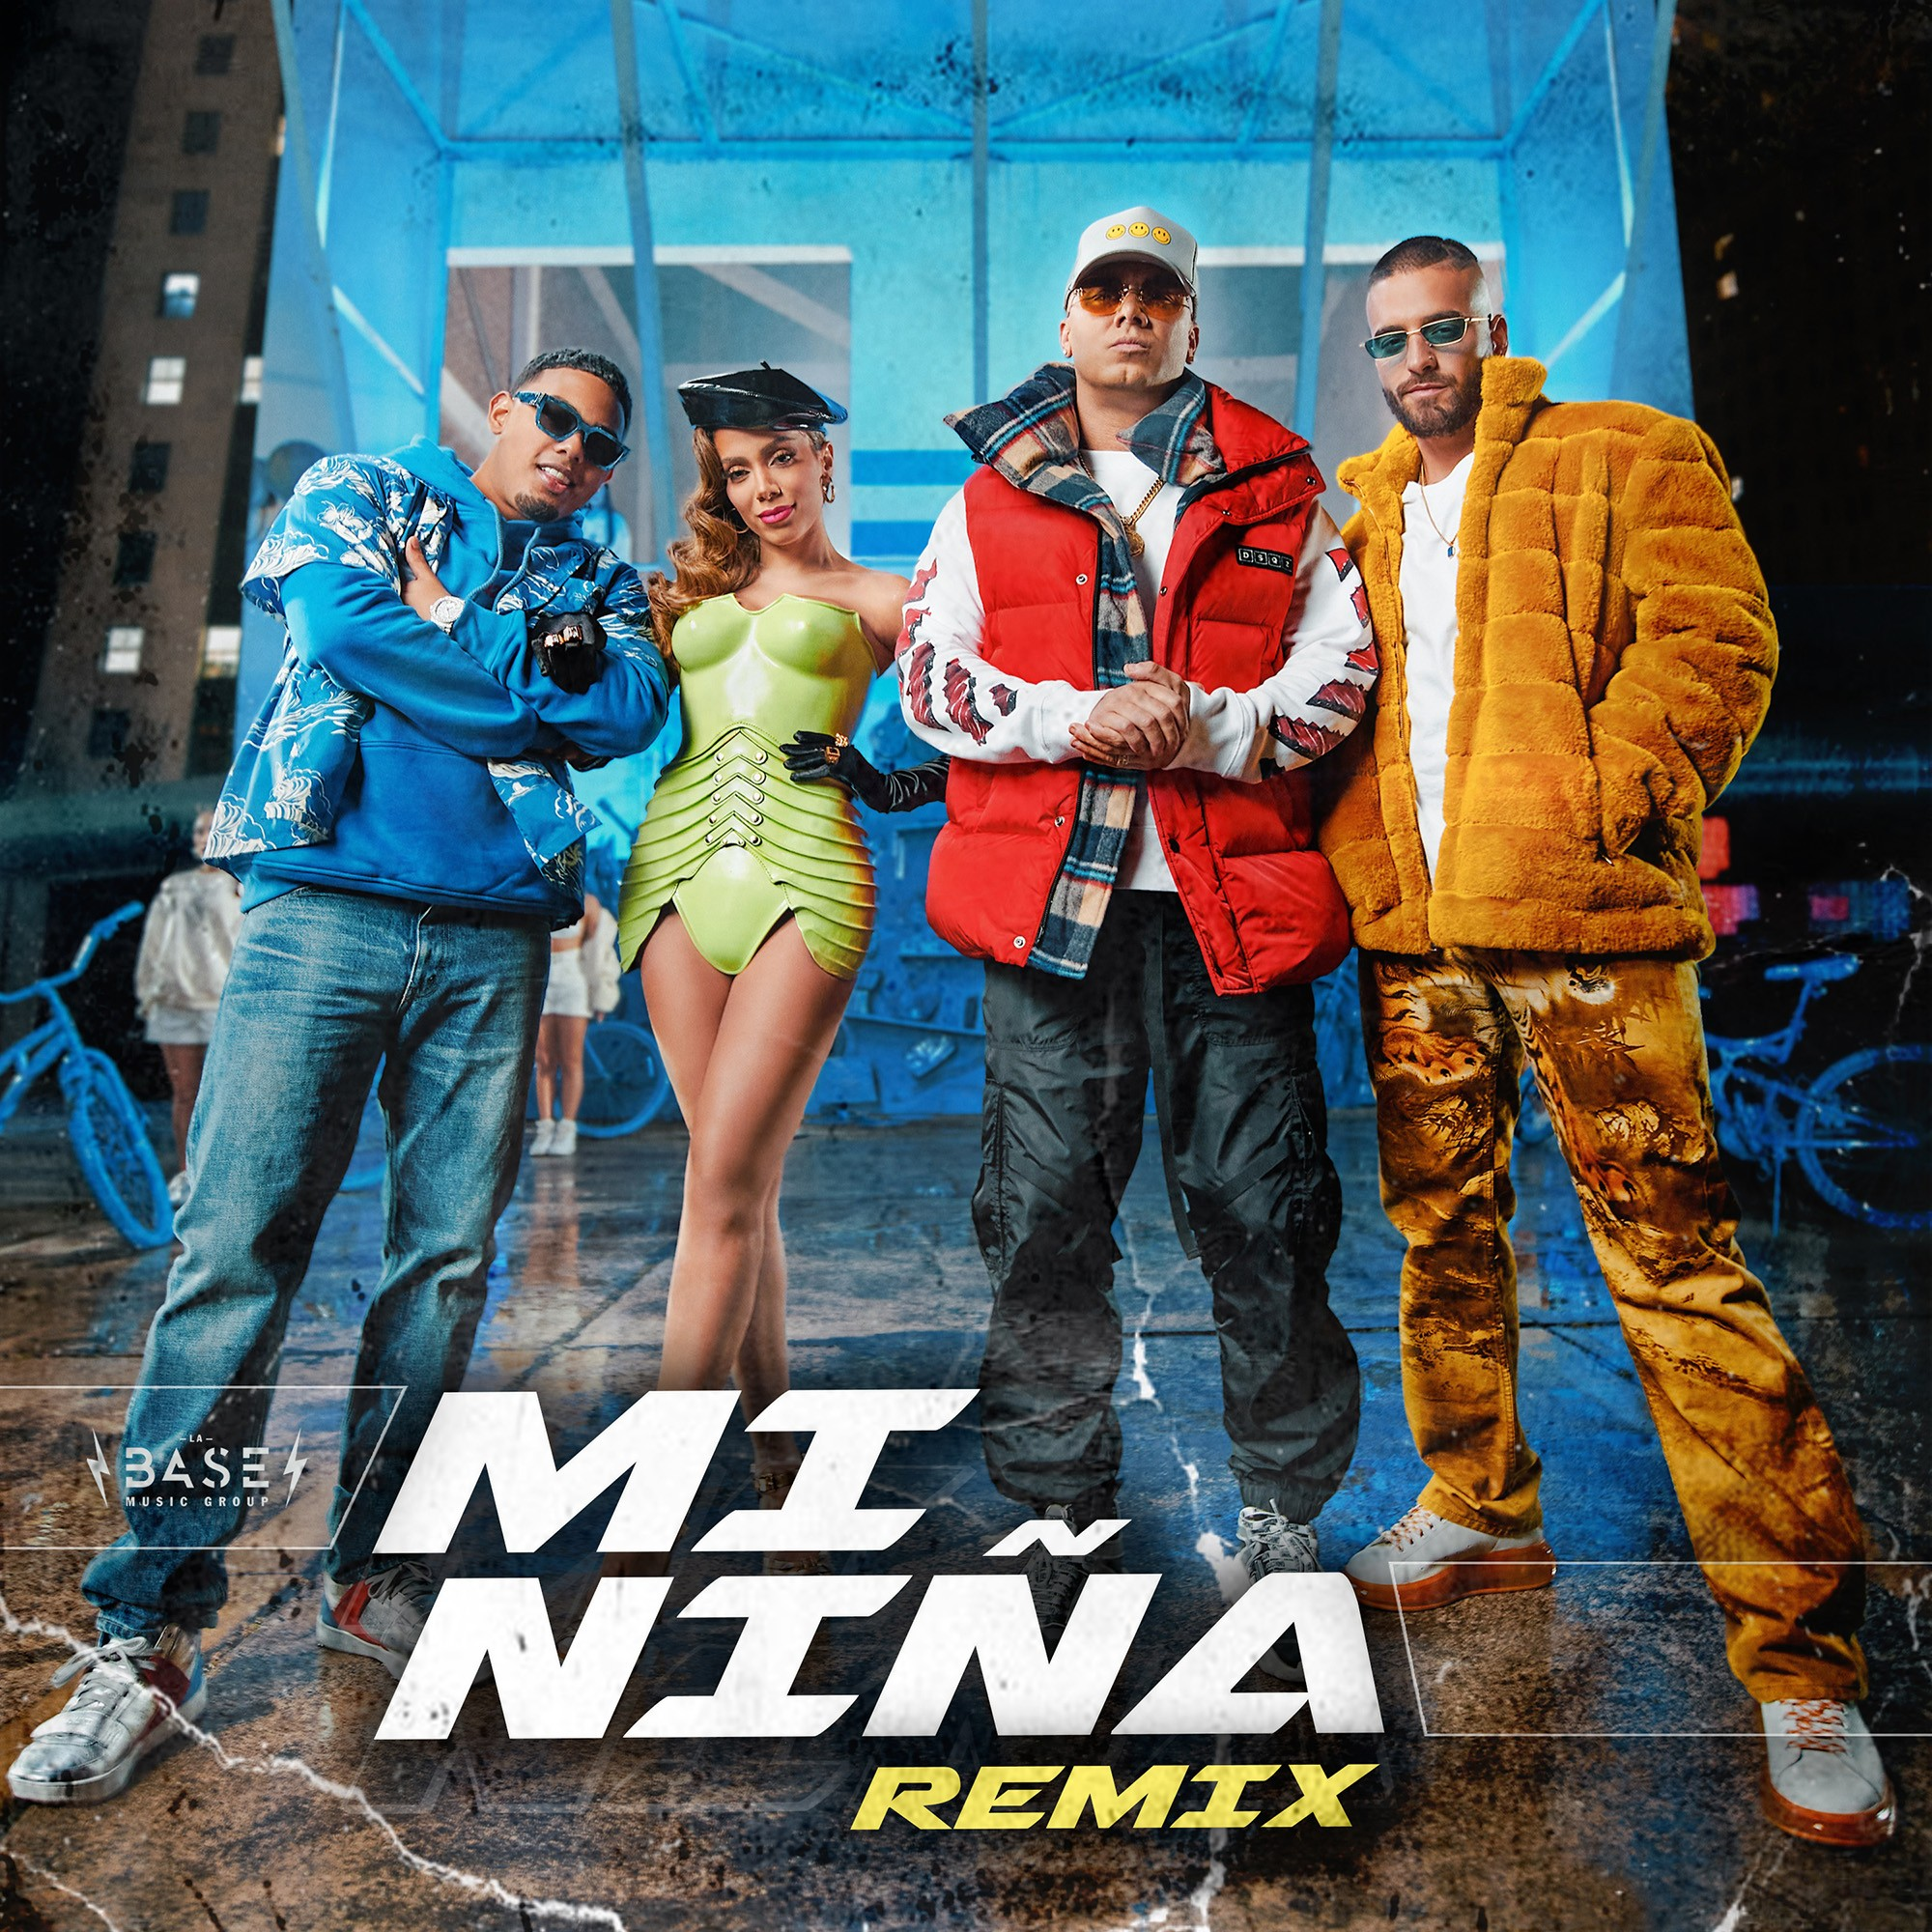 Anitta figura com Maluma no remix do hit latino 'Mi niña'